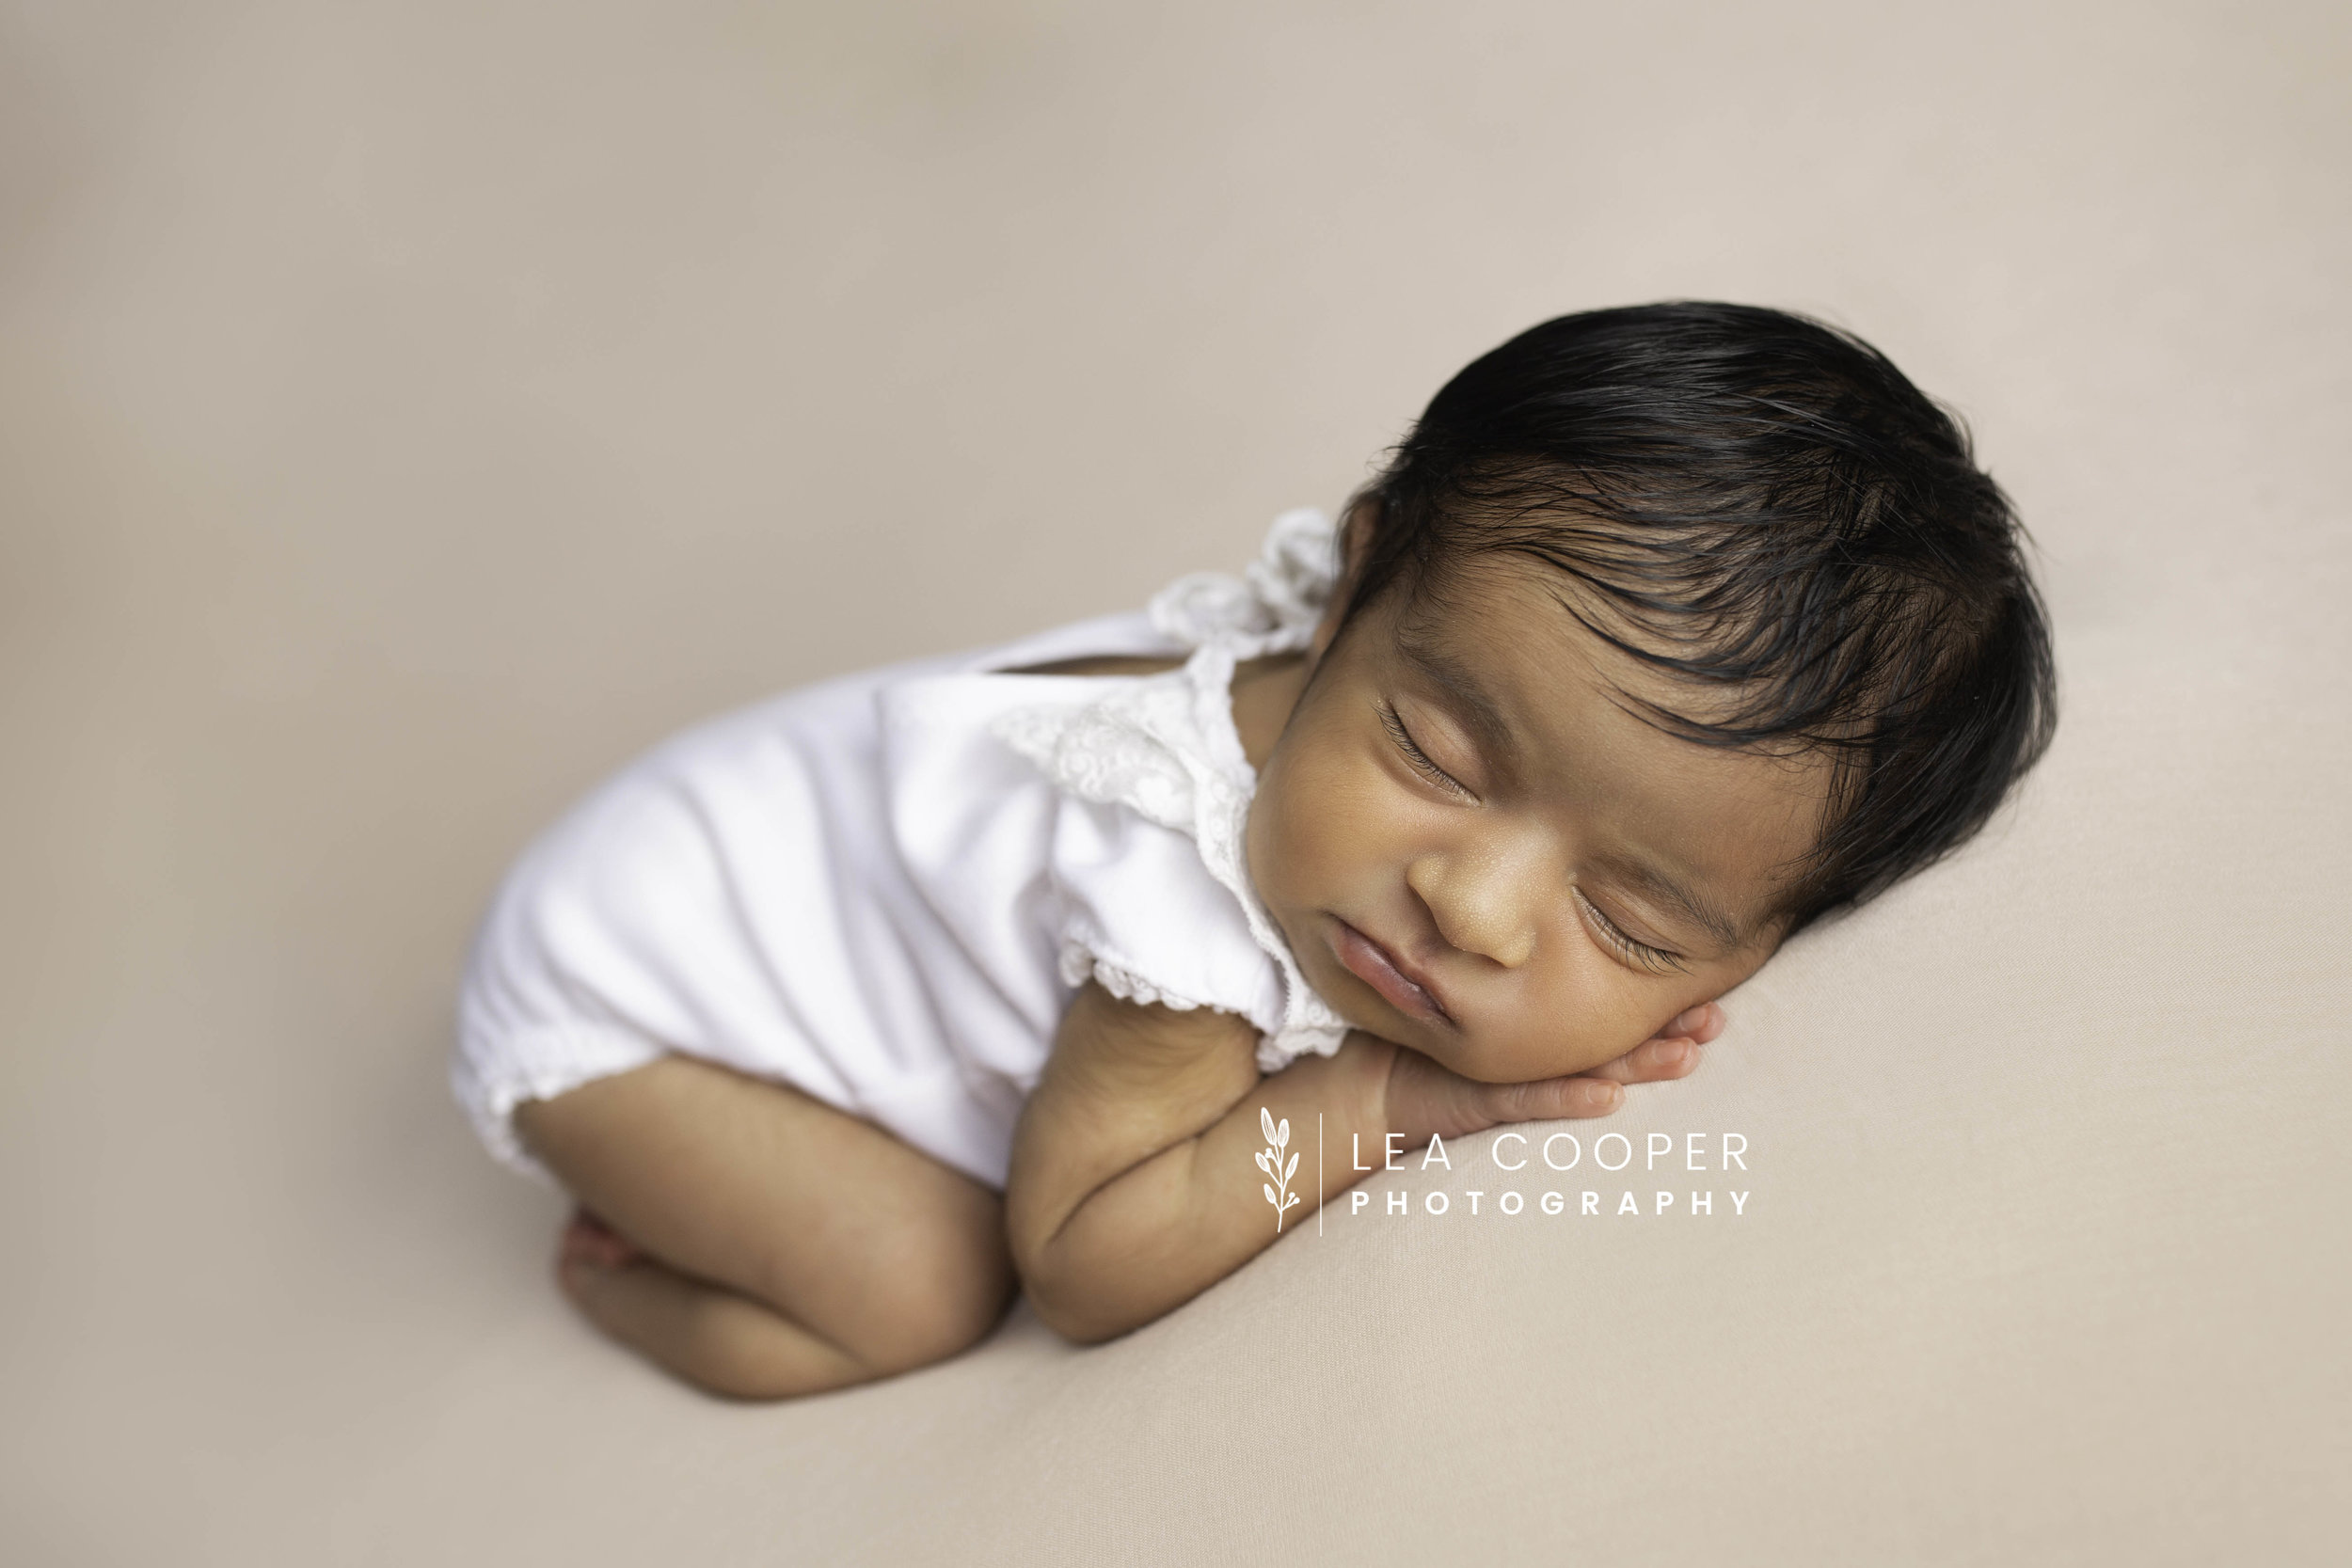 LEA-COOPER-PHOTOGRAPHY-NEWBORN-PHOTOGRAPHER-BABY-PHOTOGRAPHY-NEWBORN-SESSION-WILLENHALL-WOLVERHAMPTON-WEST-MIDLANDS-UK-7.jpg